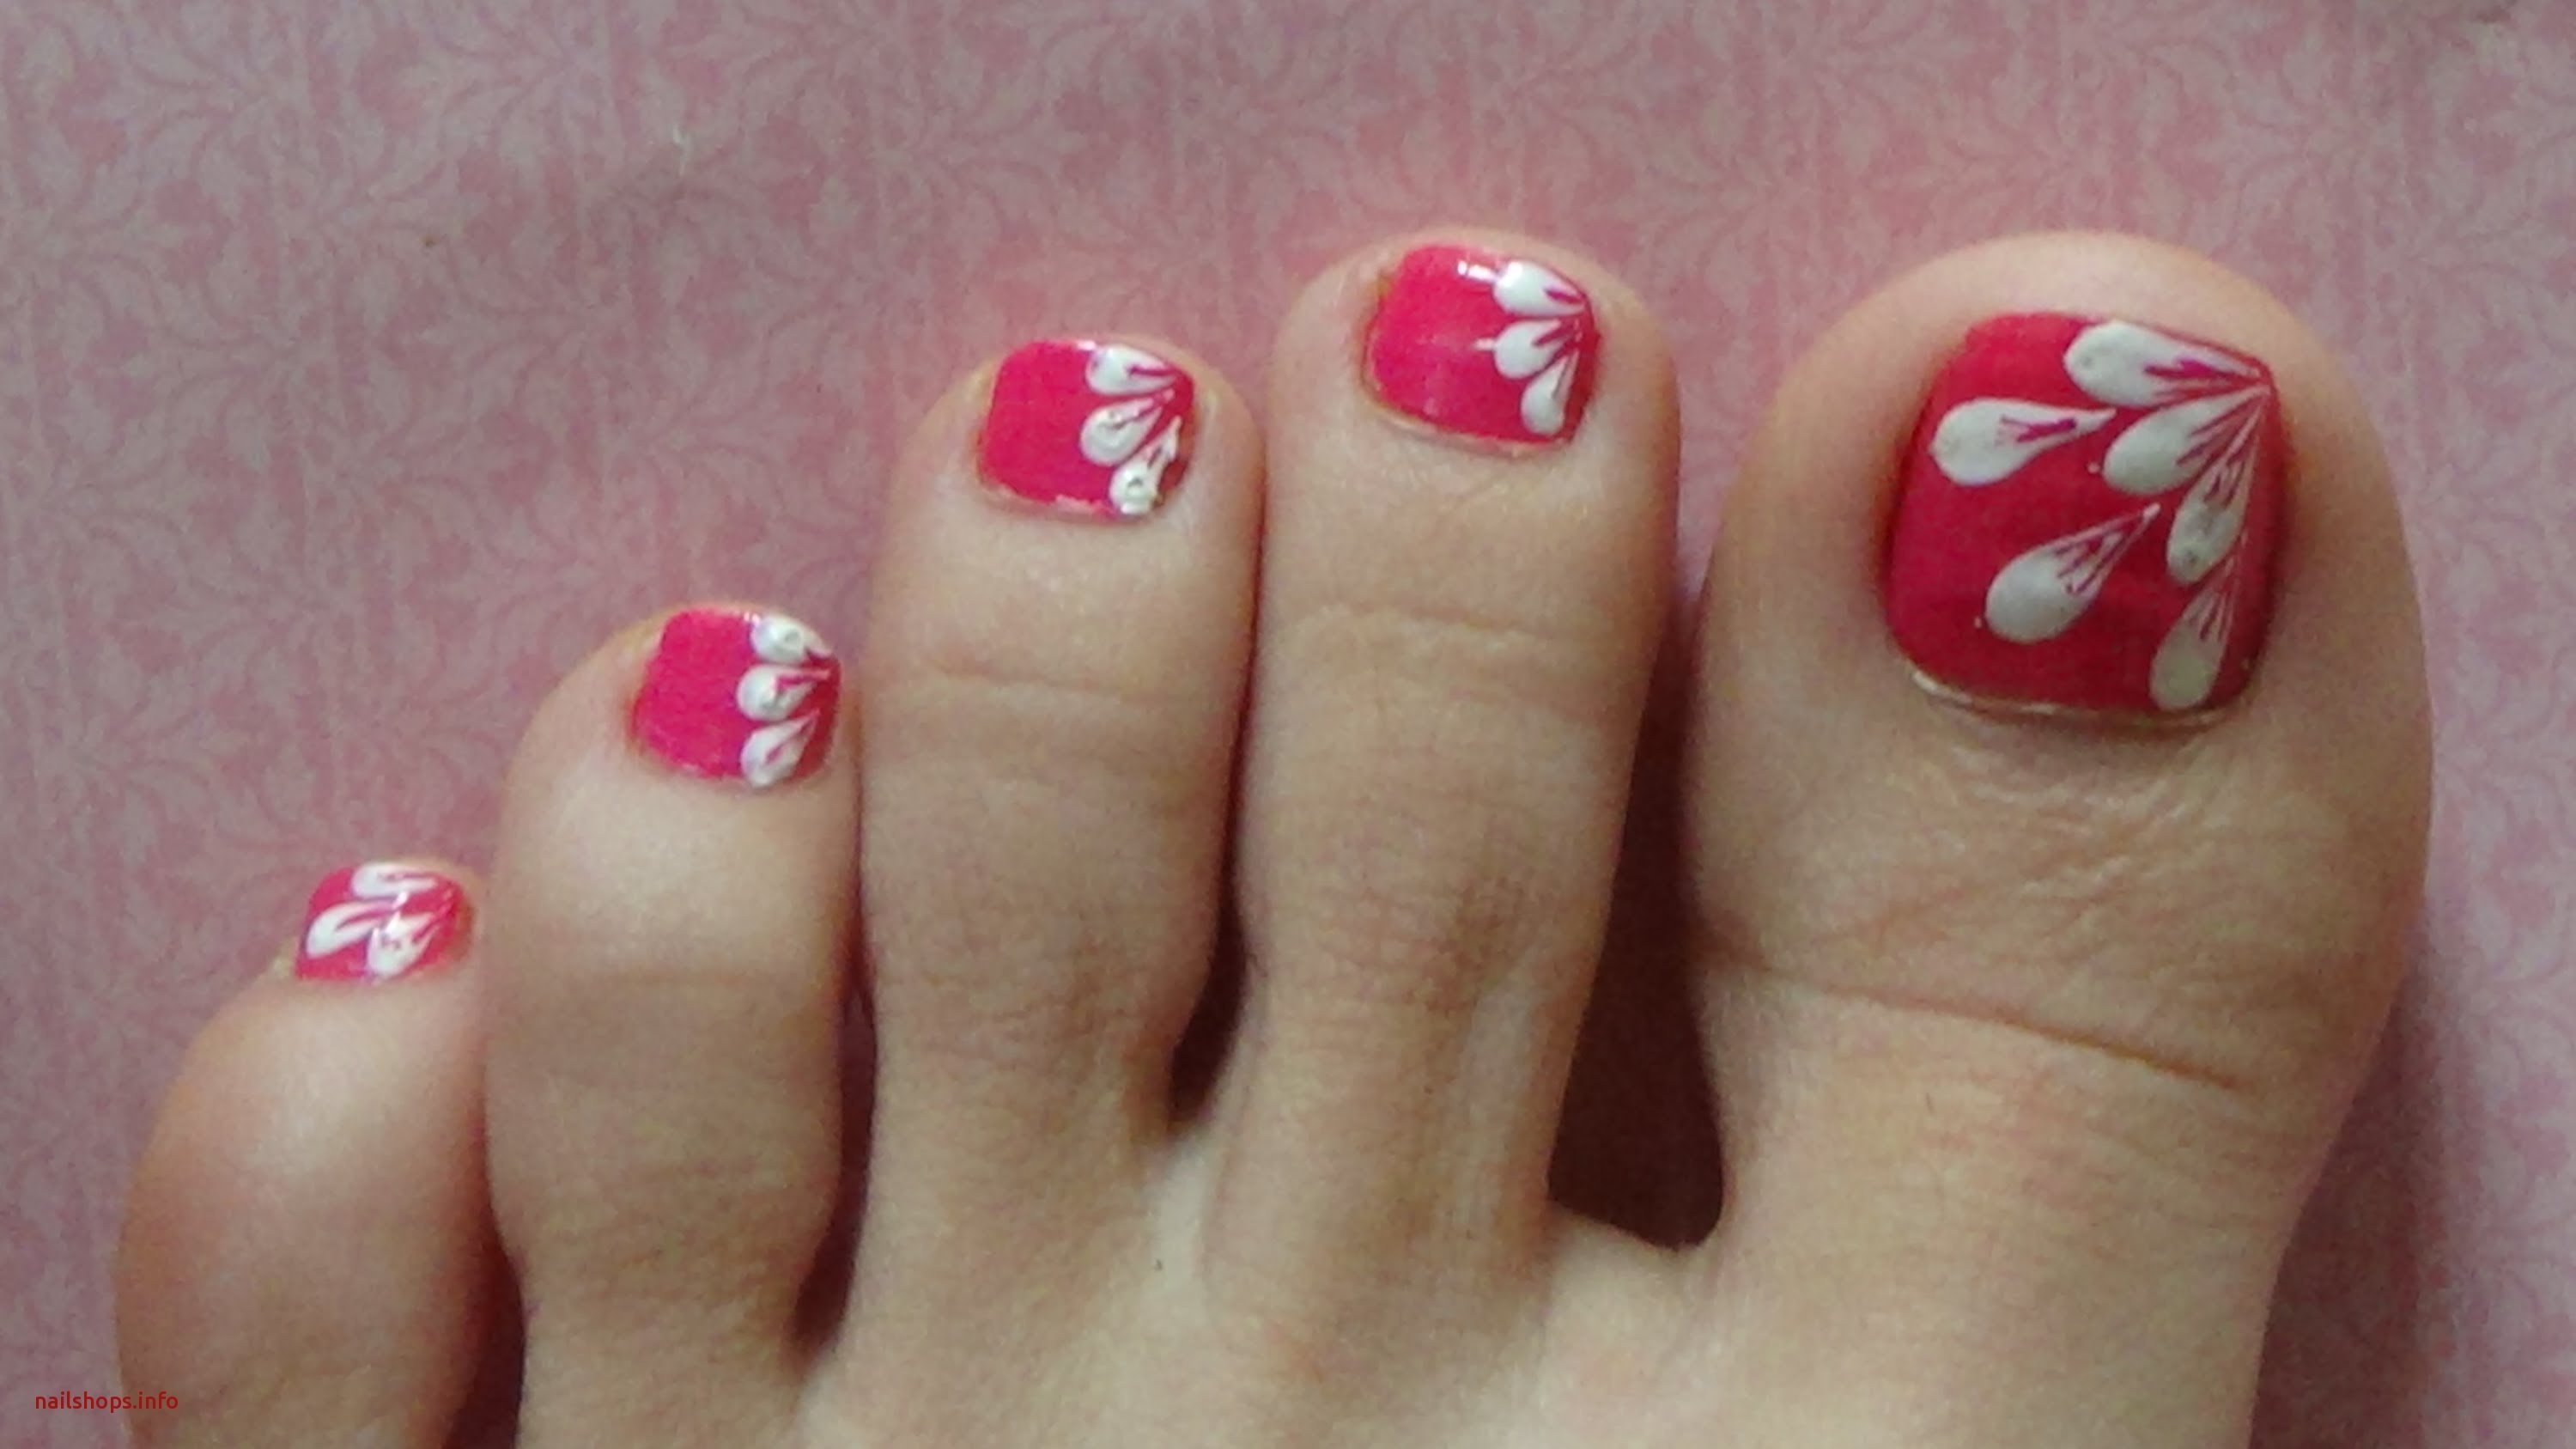 10 Unique Nail Art Ideas For Toes